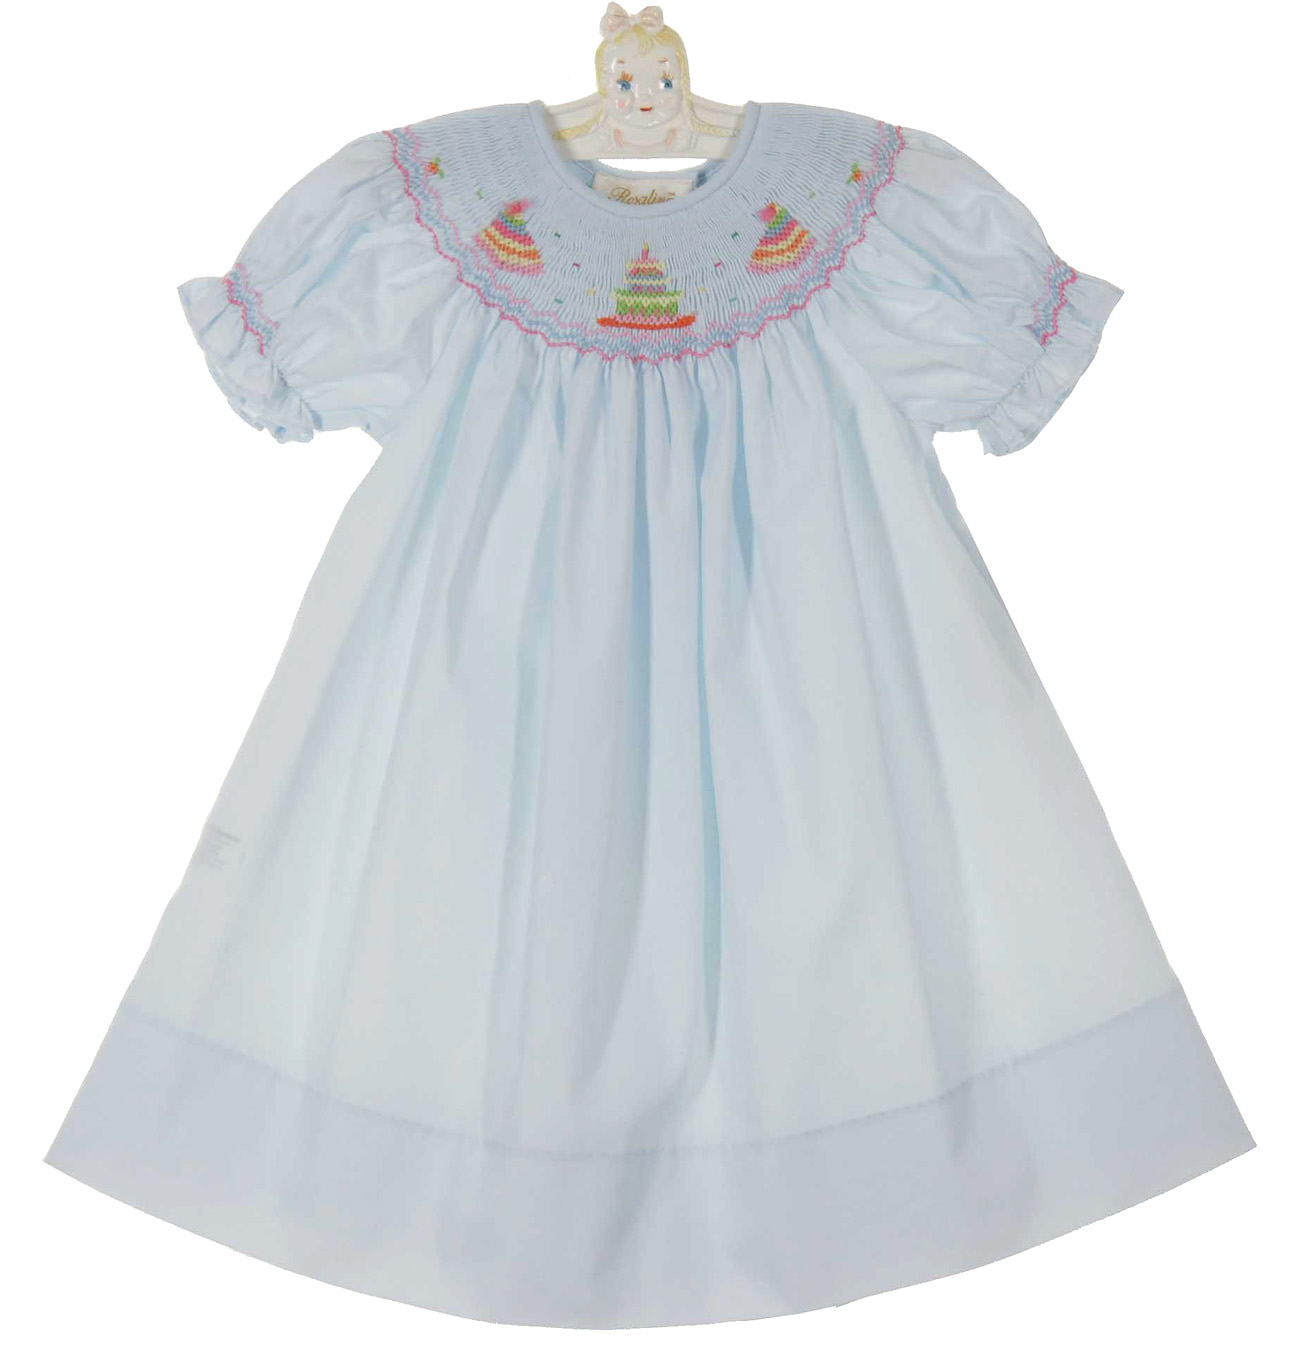 Rosalina pale blue bishop smocked birthday dress,blue smocked ...